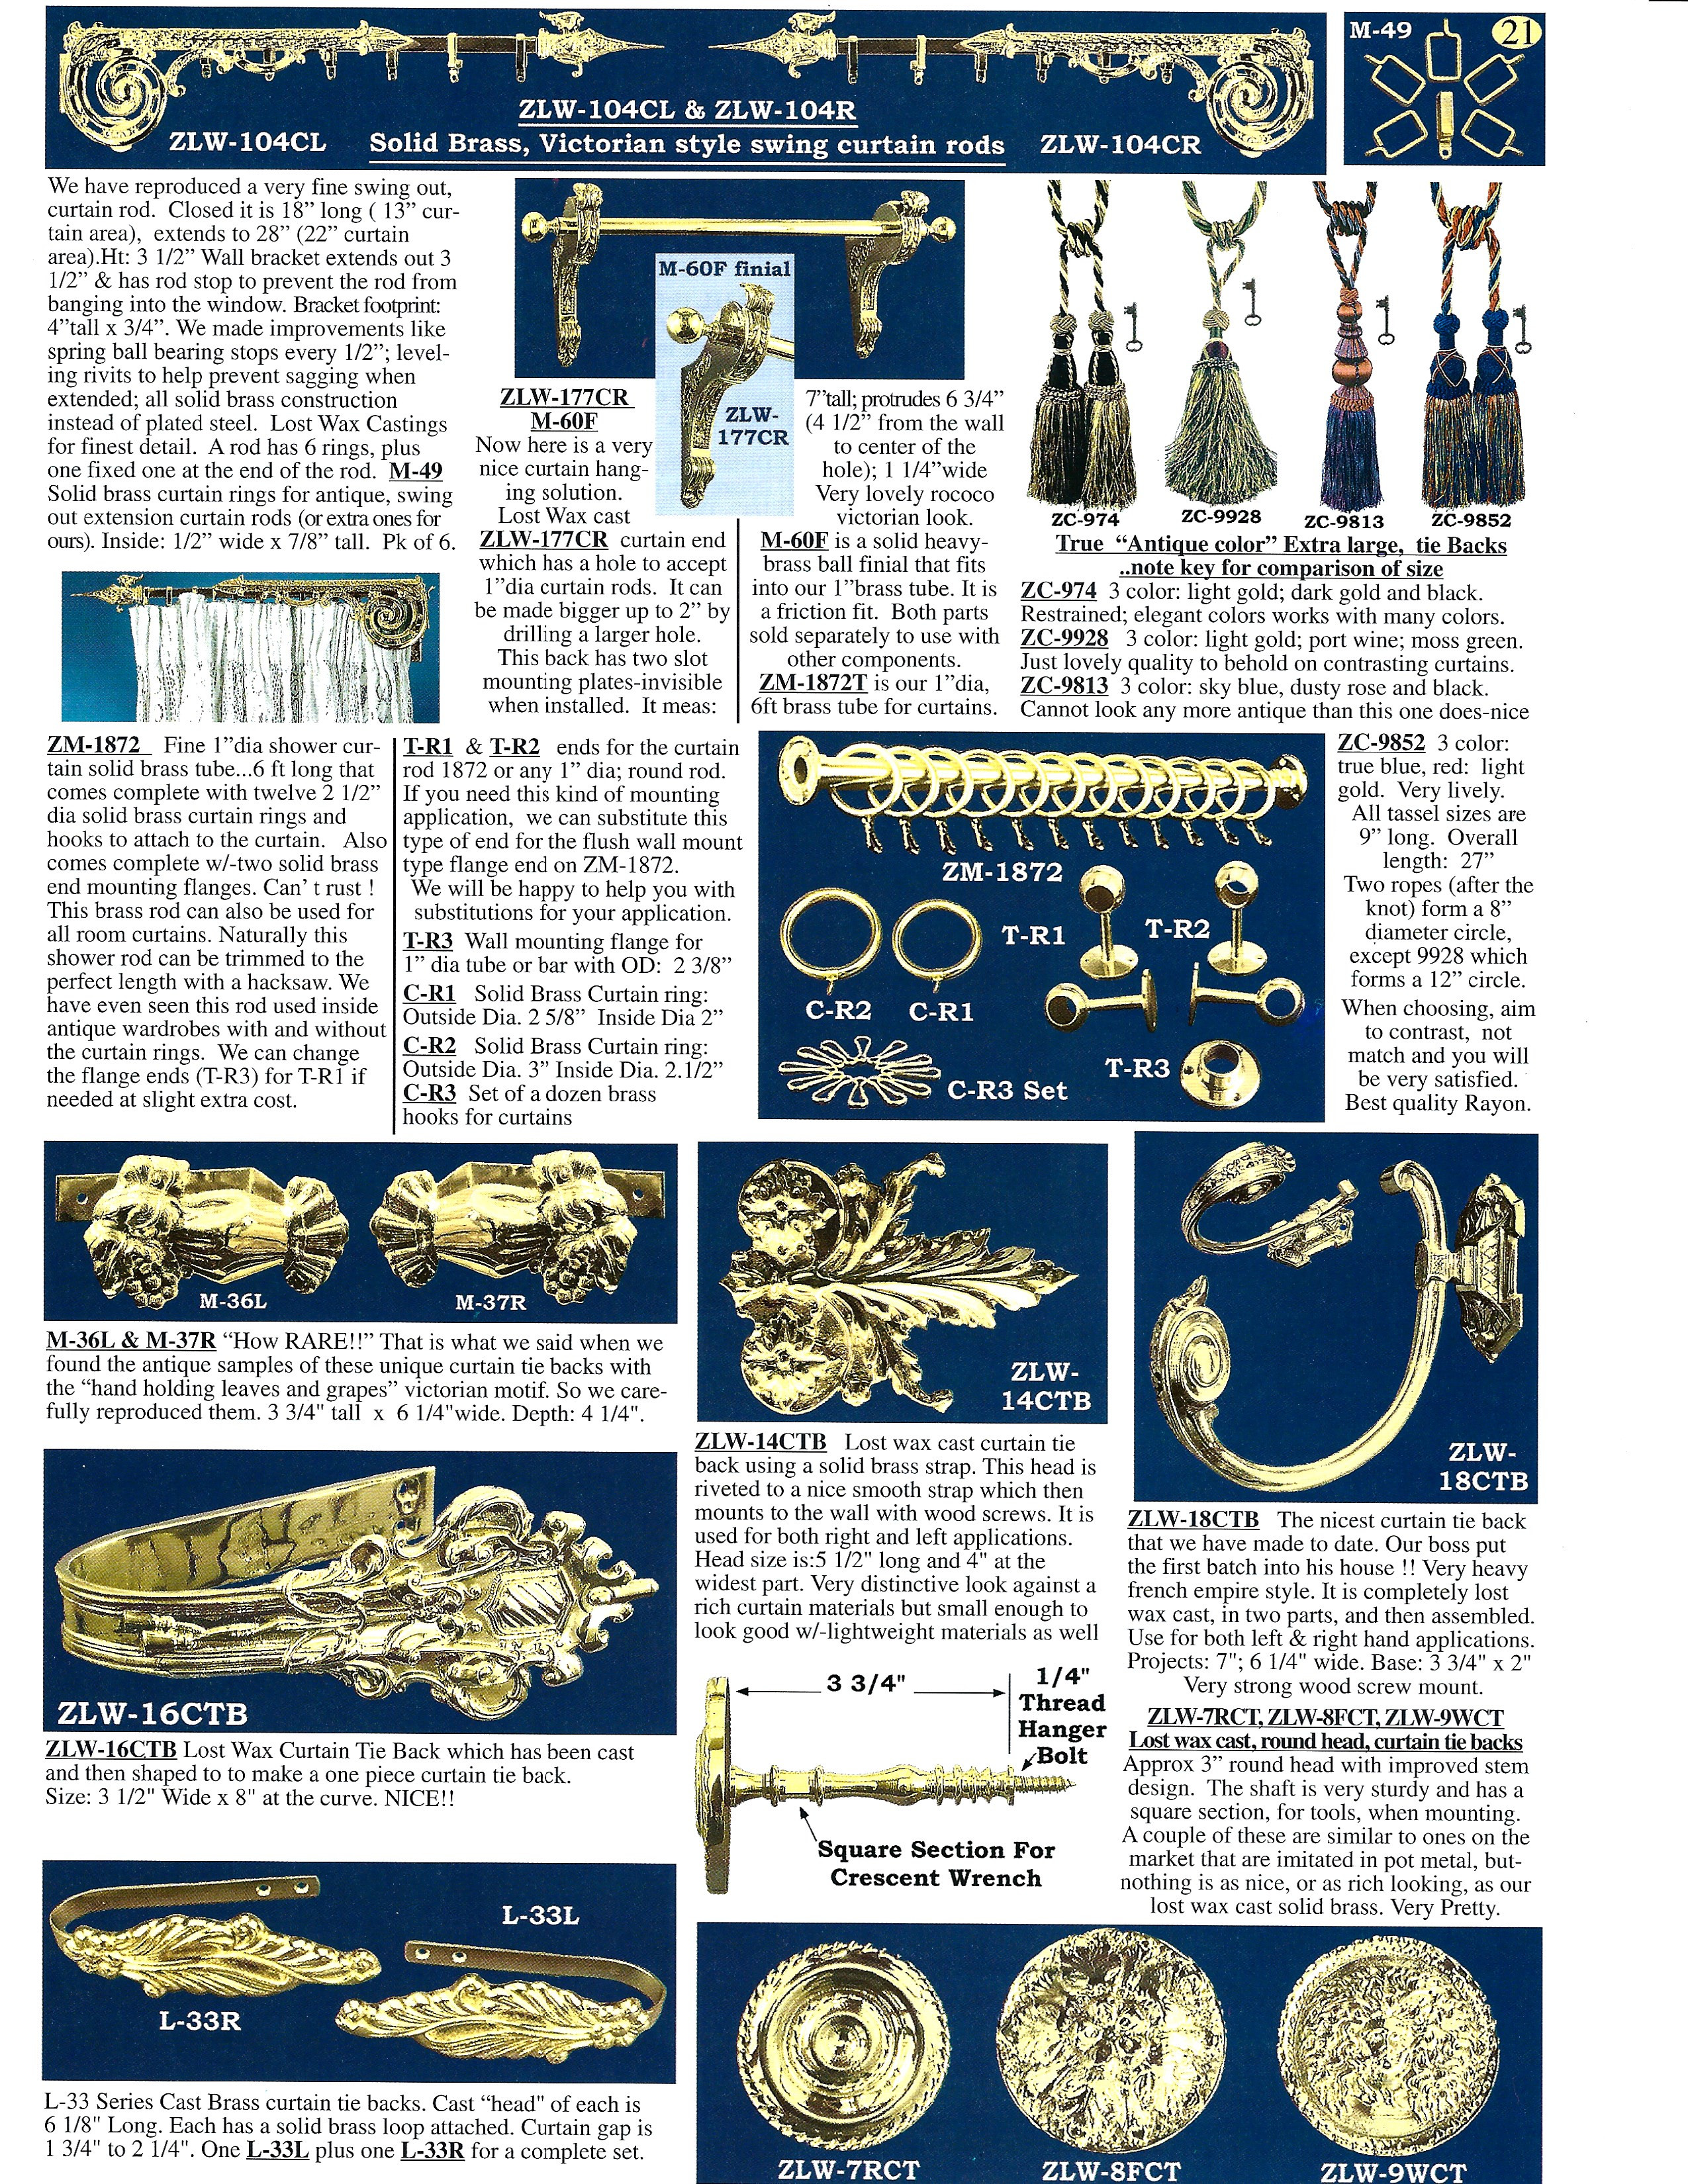 Catalog page 21